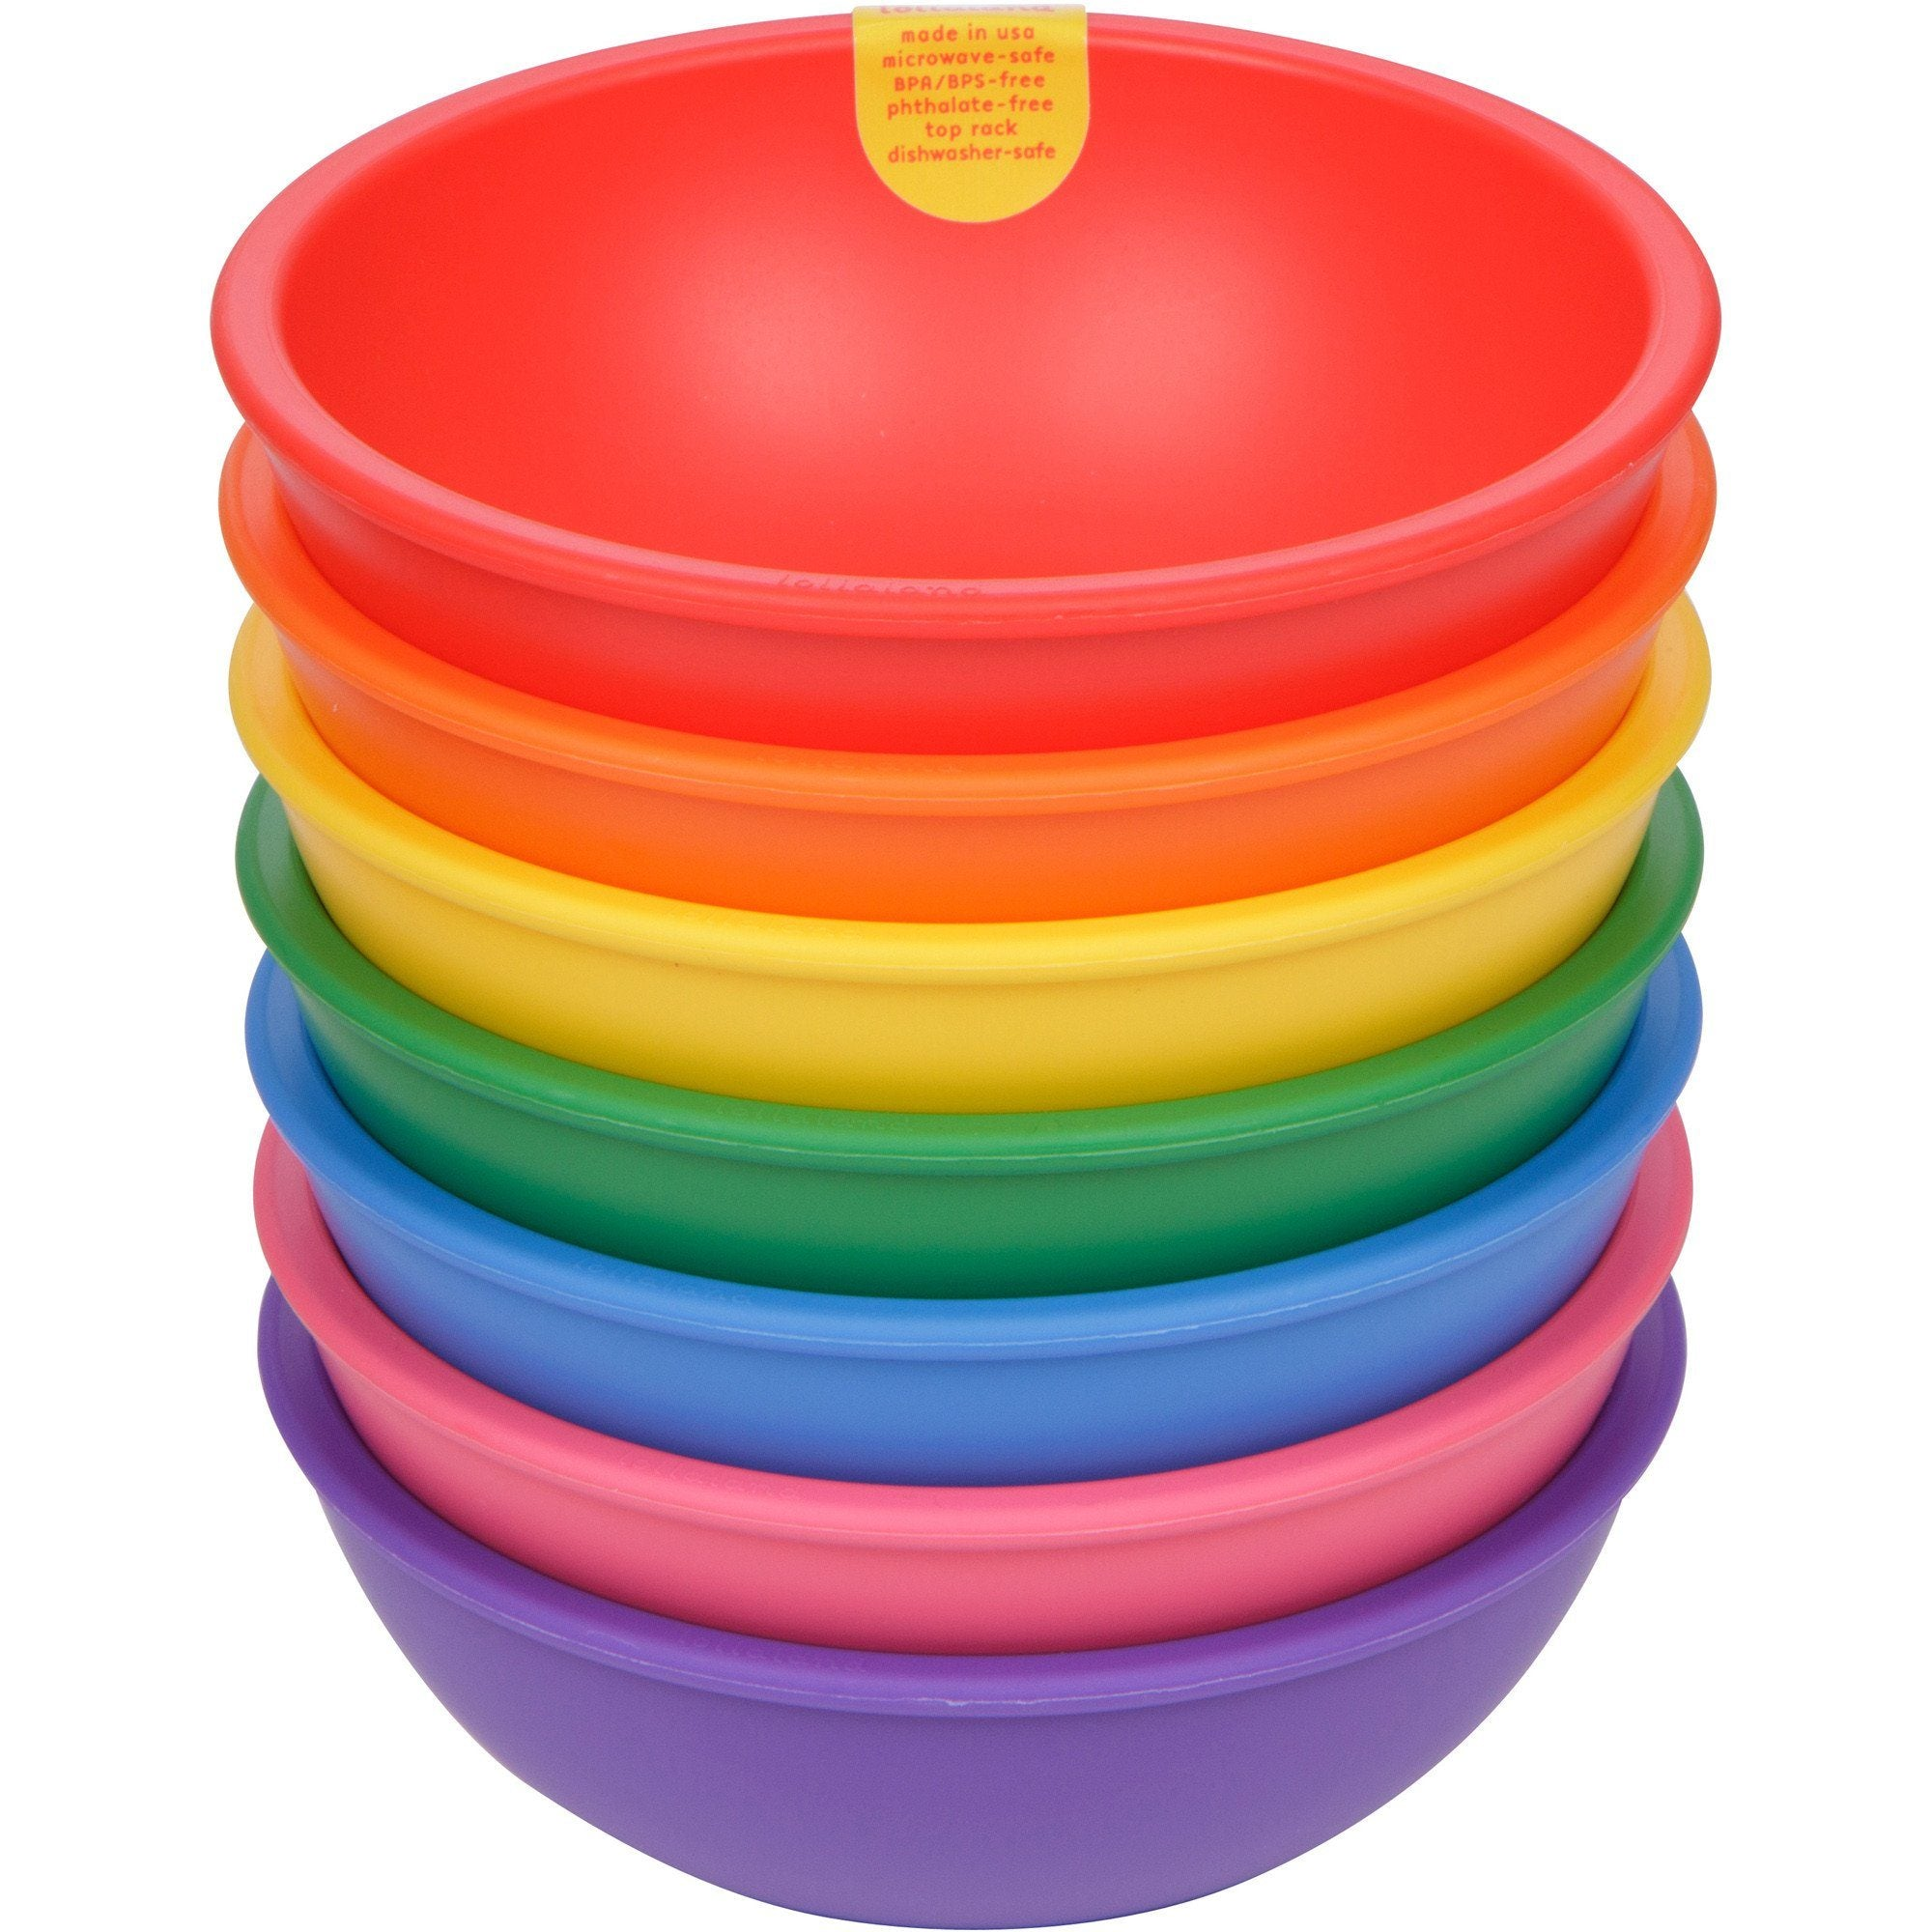 Lollaland, Mealtime Bowls - multiple colors, - Placewares